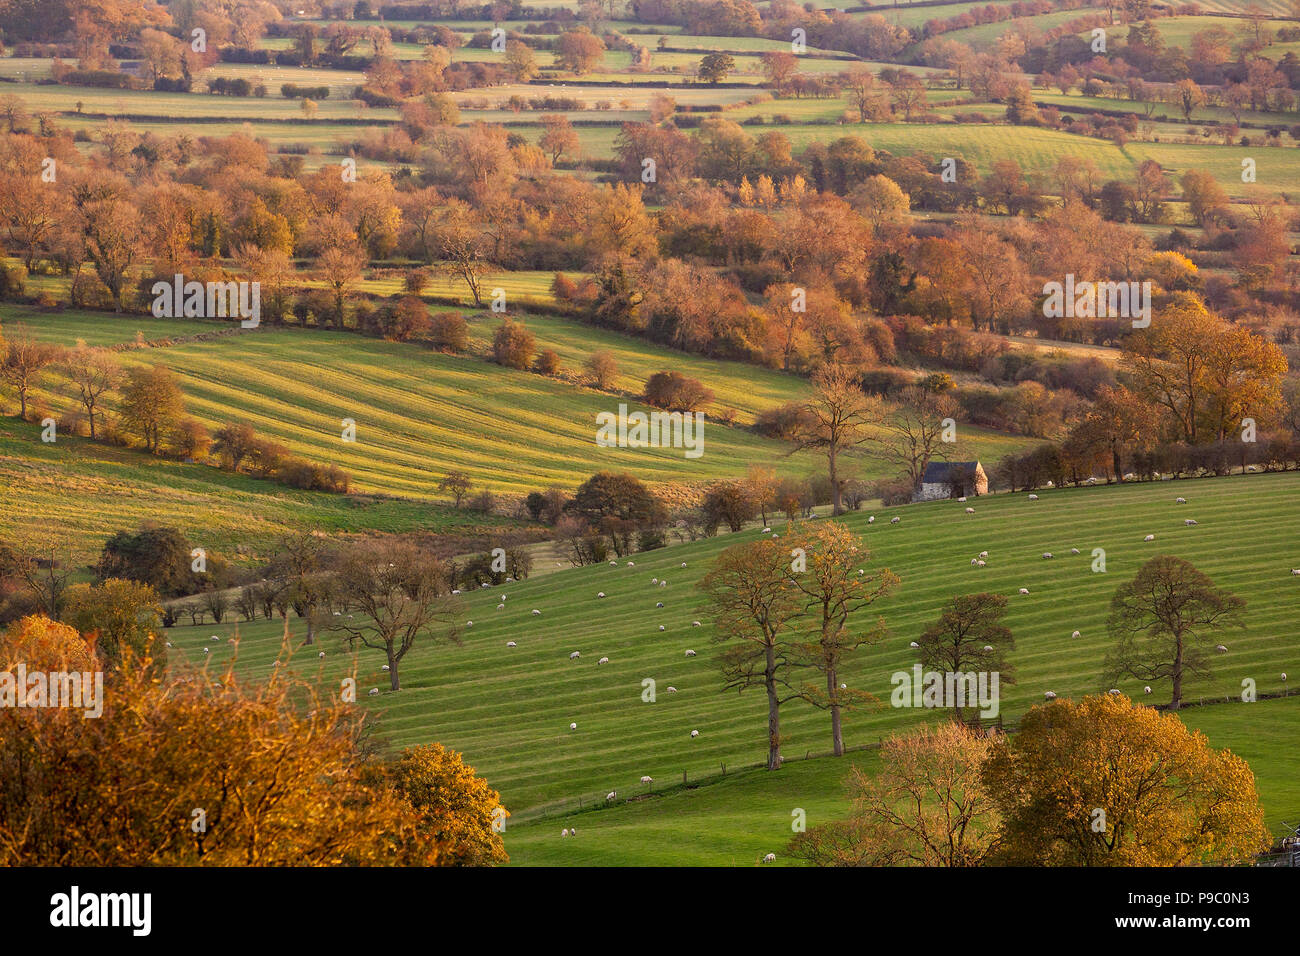 Scenic view across farmland near Brassington in the Derbyshire Dales, England, UK - Stock Image